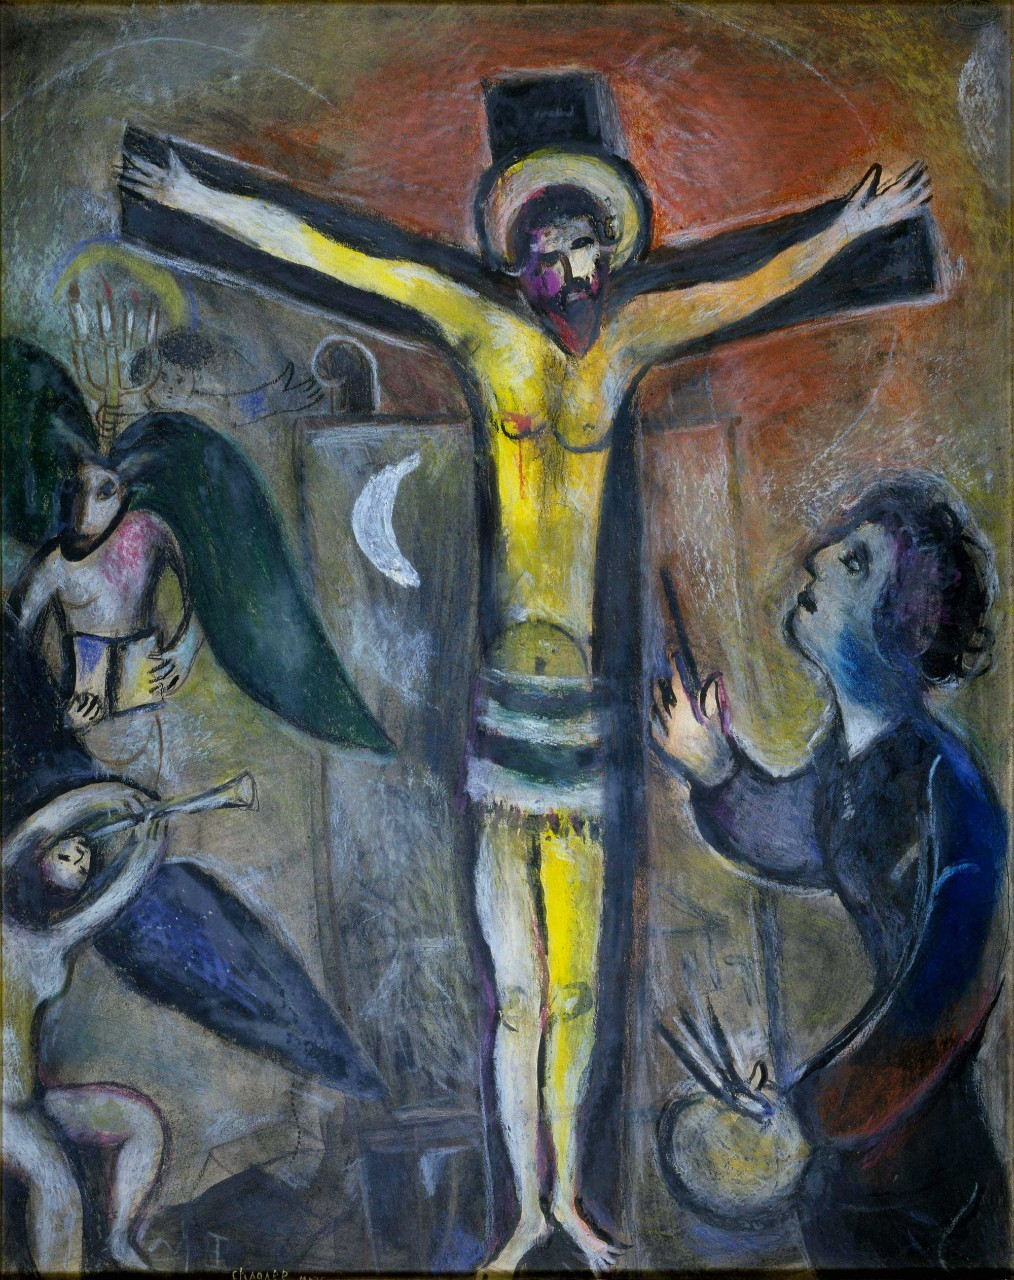 Marc chagall le christ et le peintre vatican museums for Chagall peintre